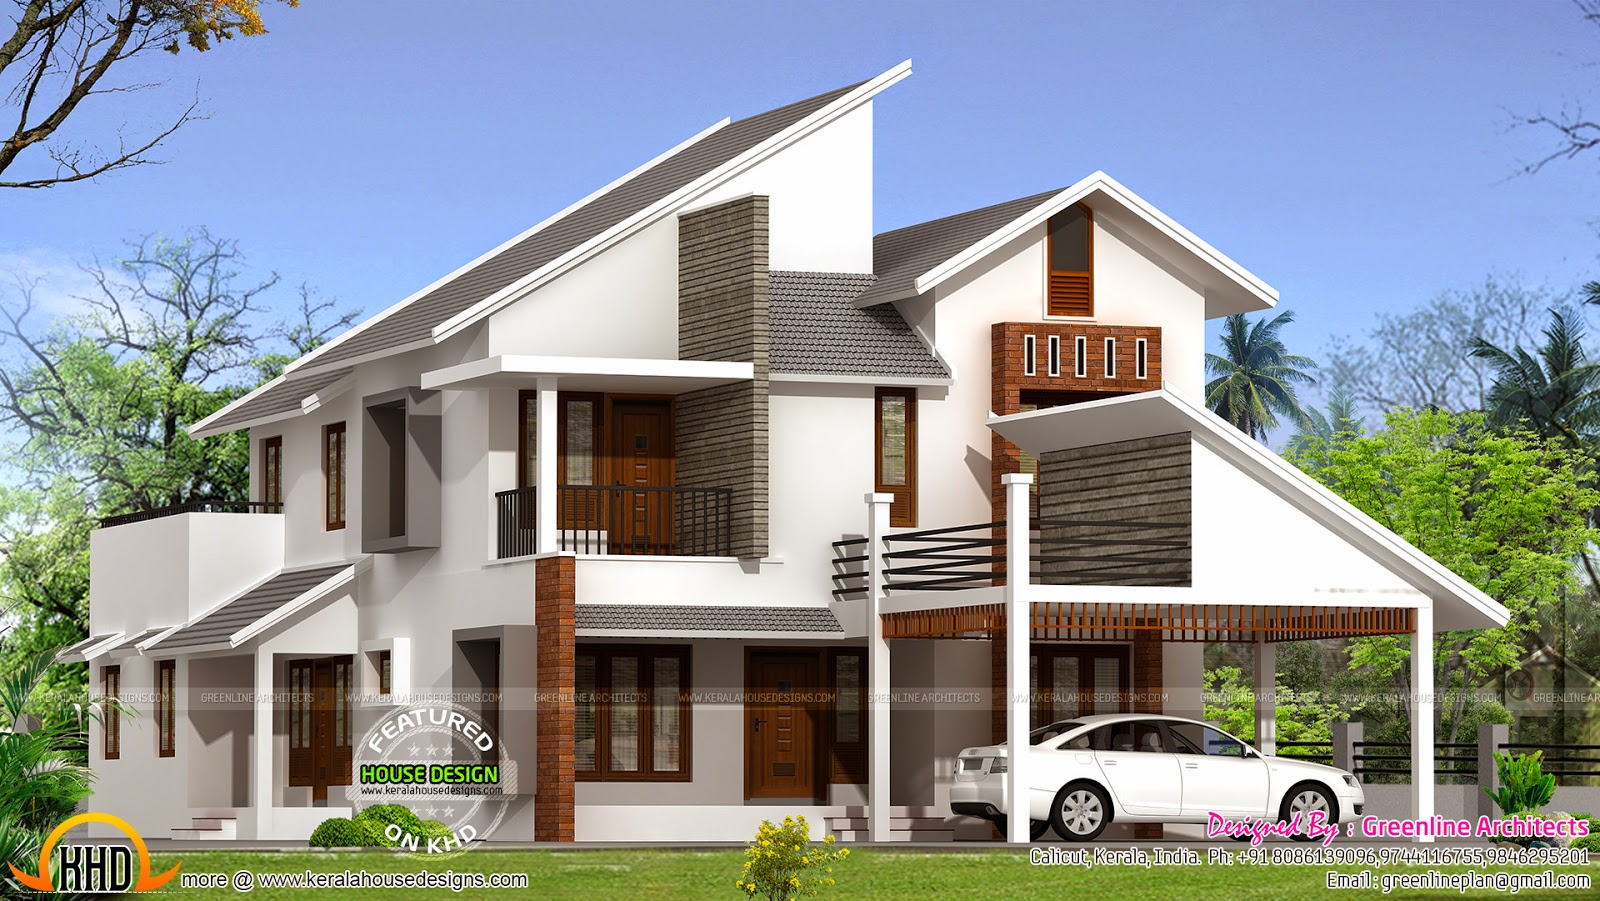 new modern house plan kerala home design and floor plans. Black Bedroom Furniture Sets. Home Design Ideas